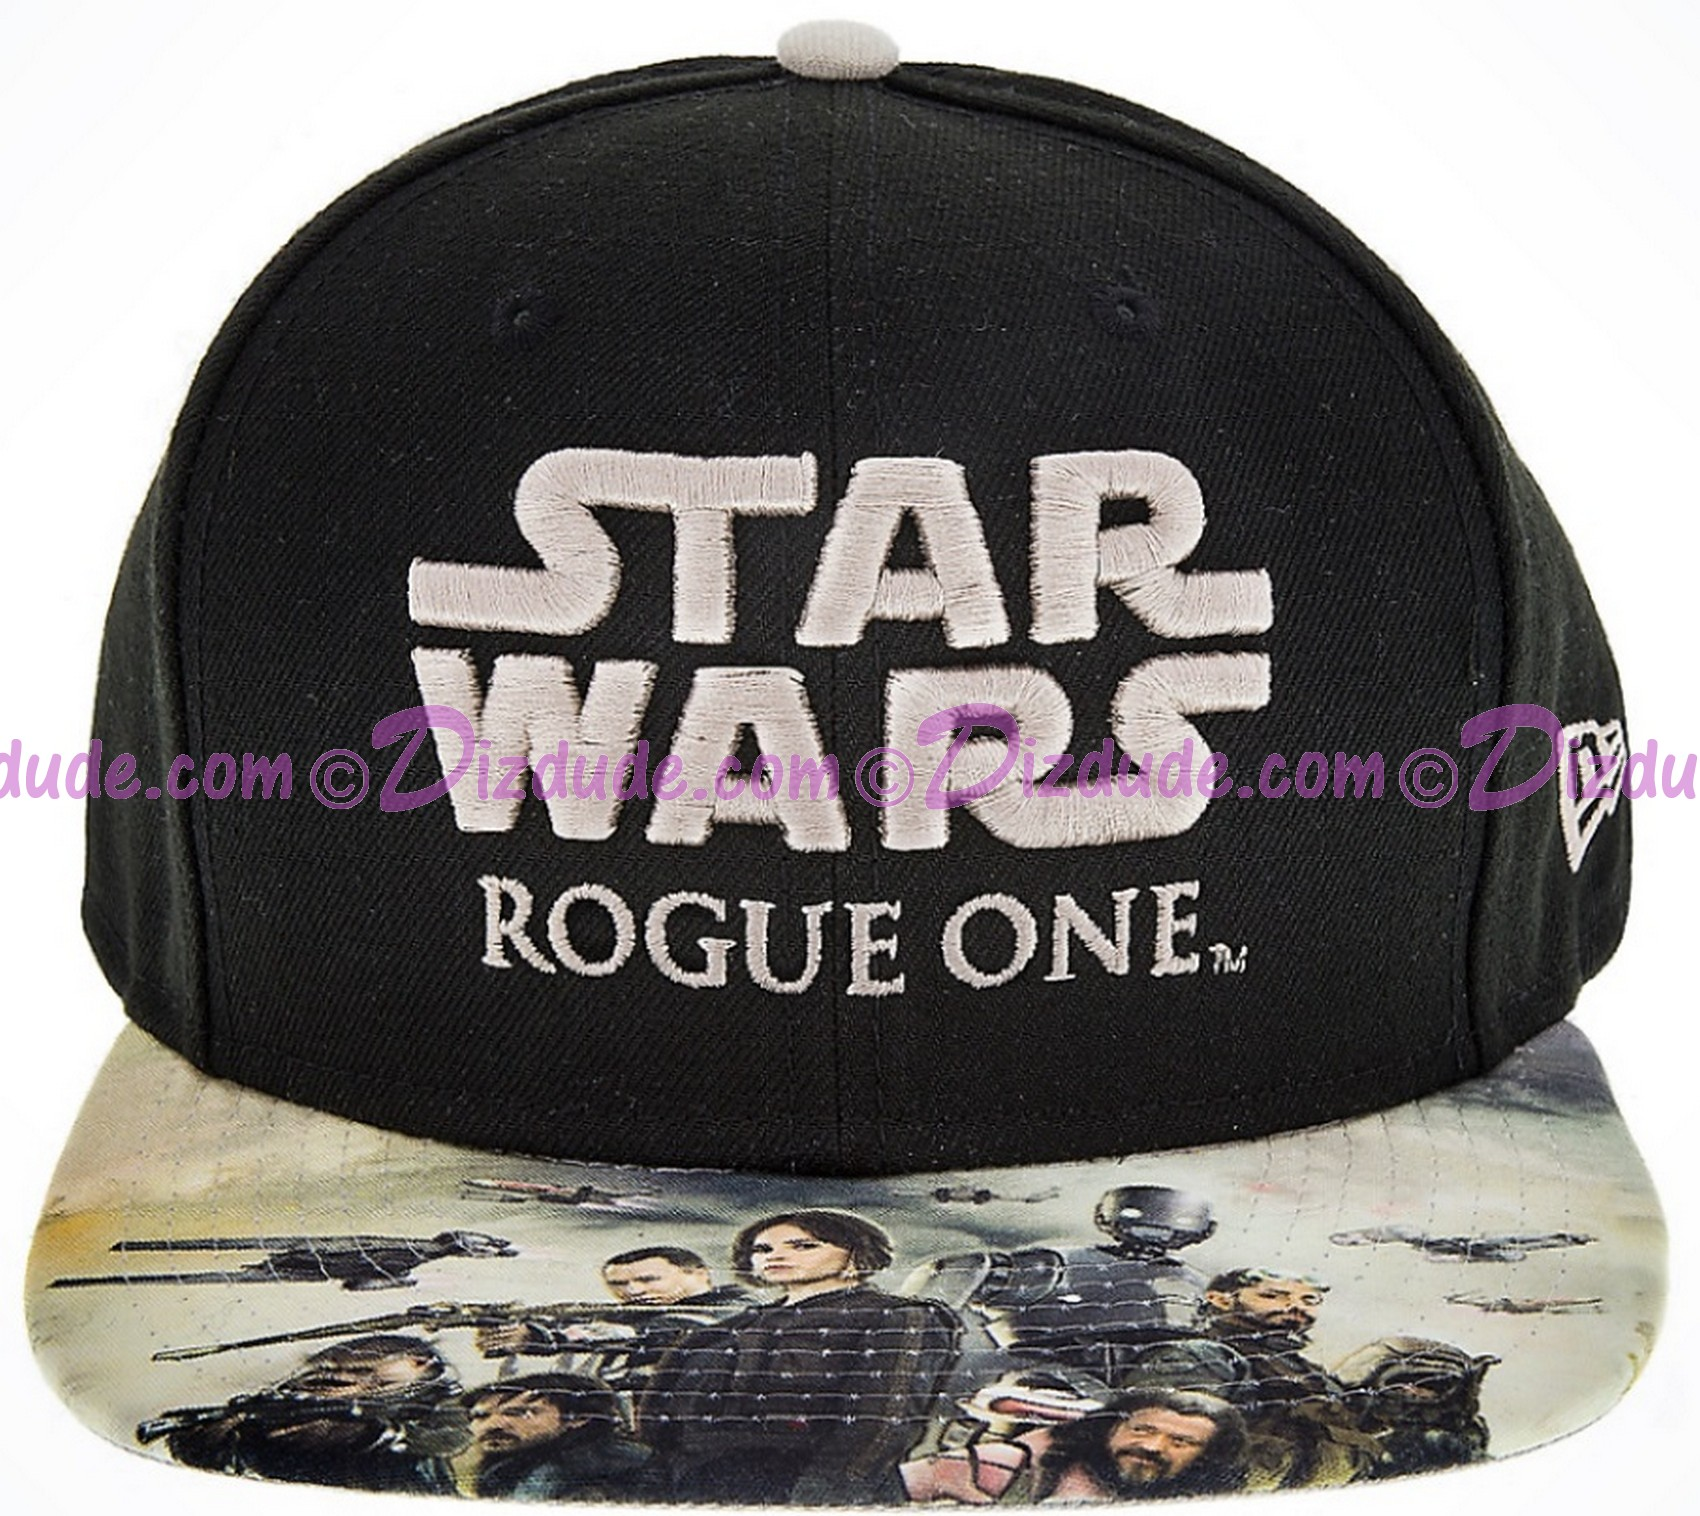 Rogue One Rebel Adult Adjustable Baseball Hat - Disney's Star Wars © Dizdude.com